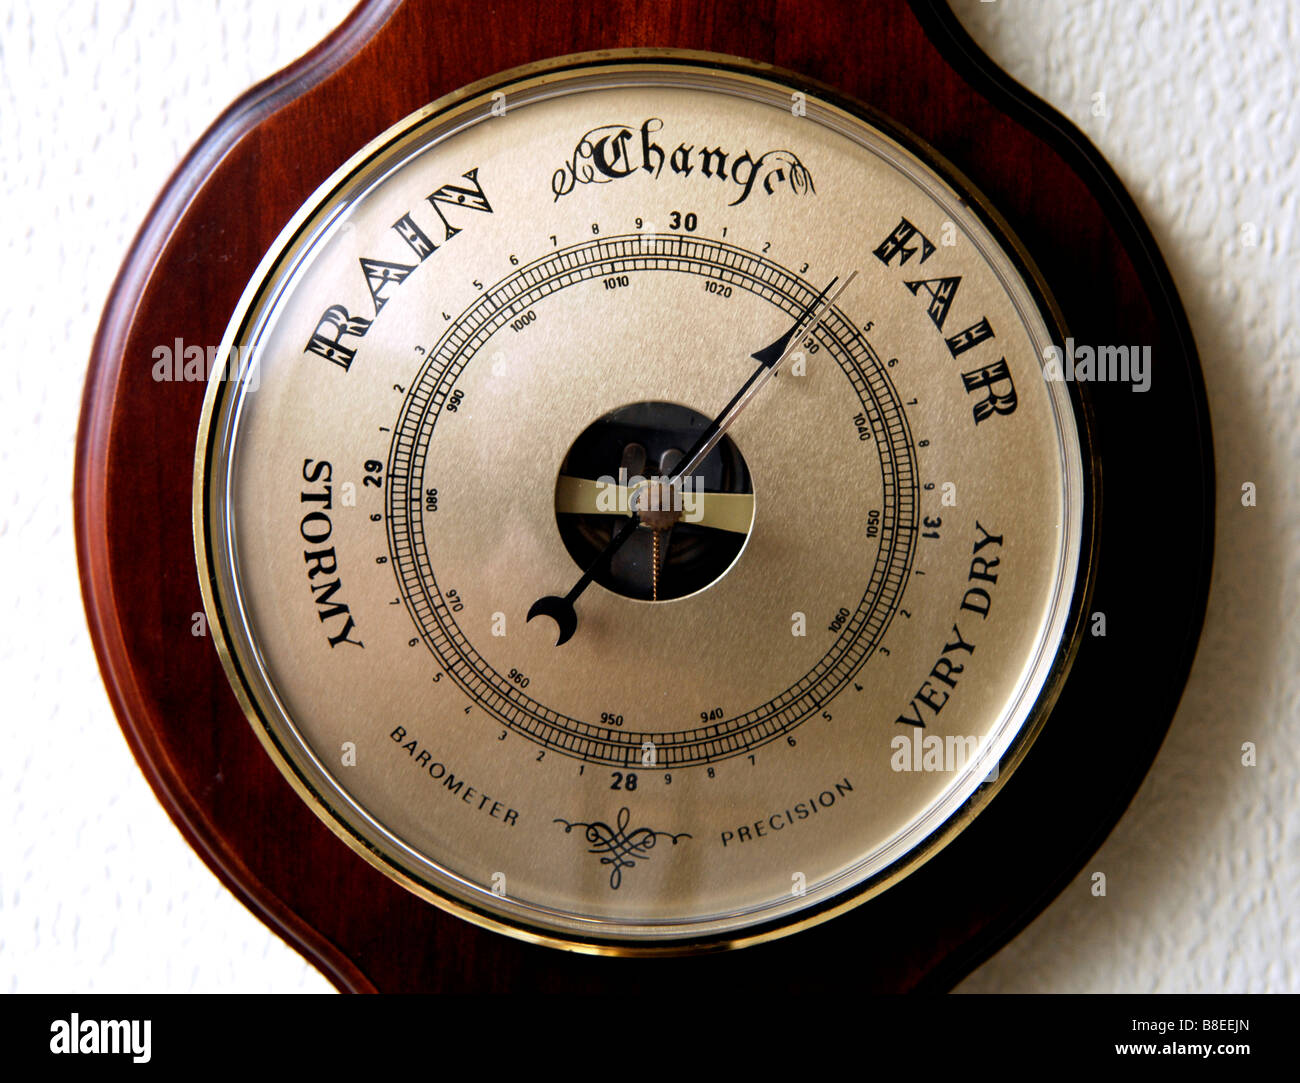 A Barometer Used For Weather Forecasting Measuring The